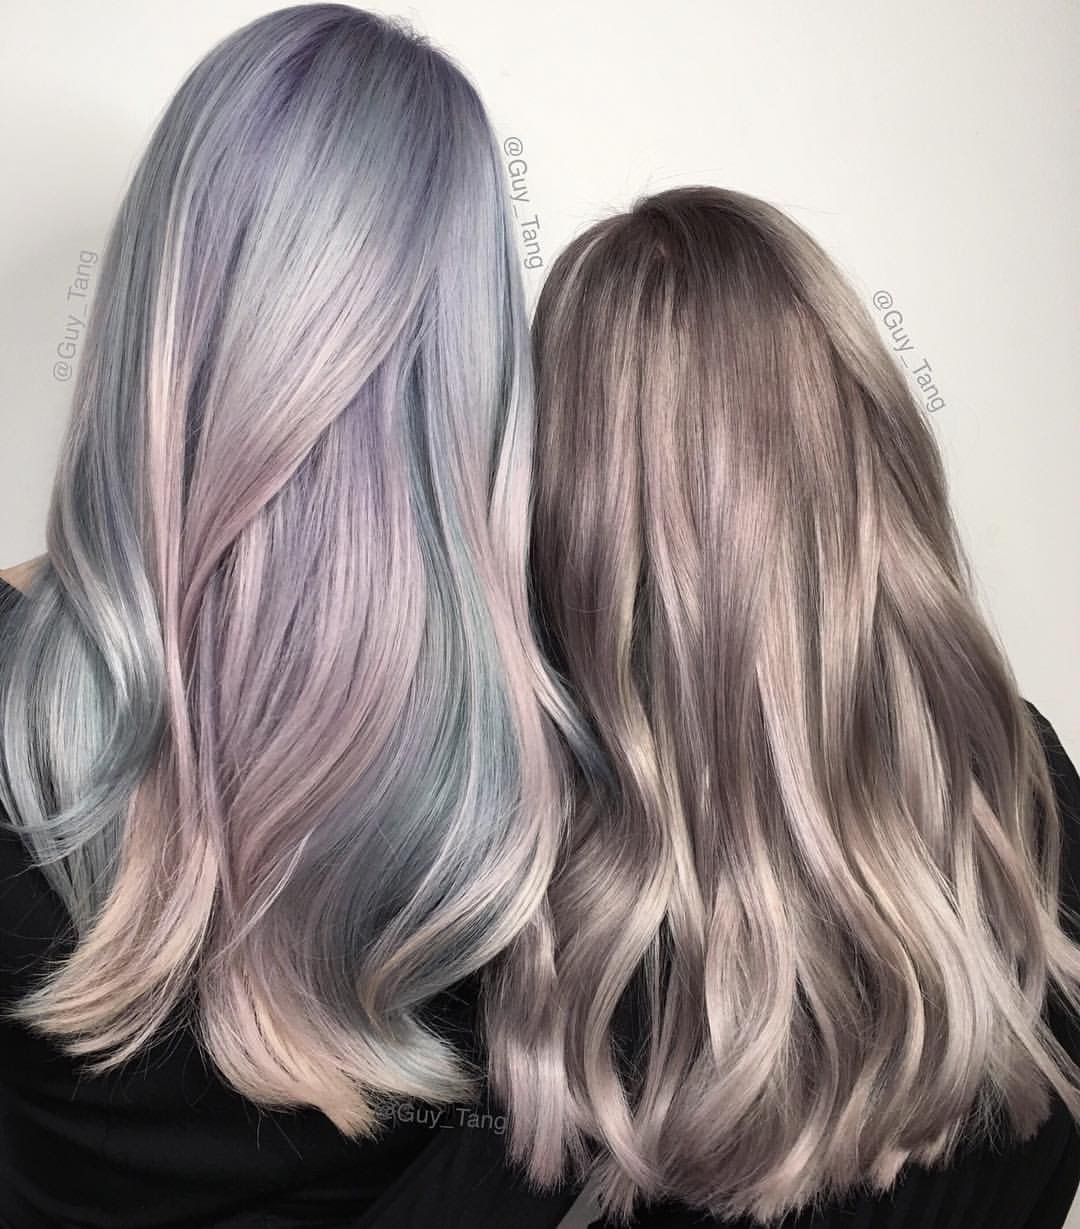 Guy tang metallic hair colors beauty pinterest guy for Guy tang salon